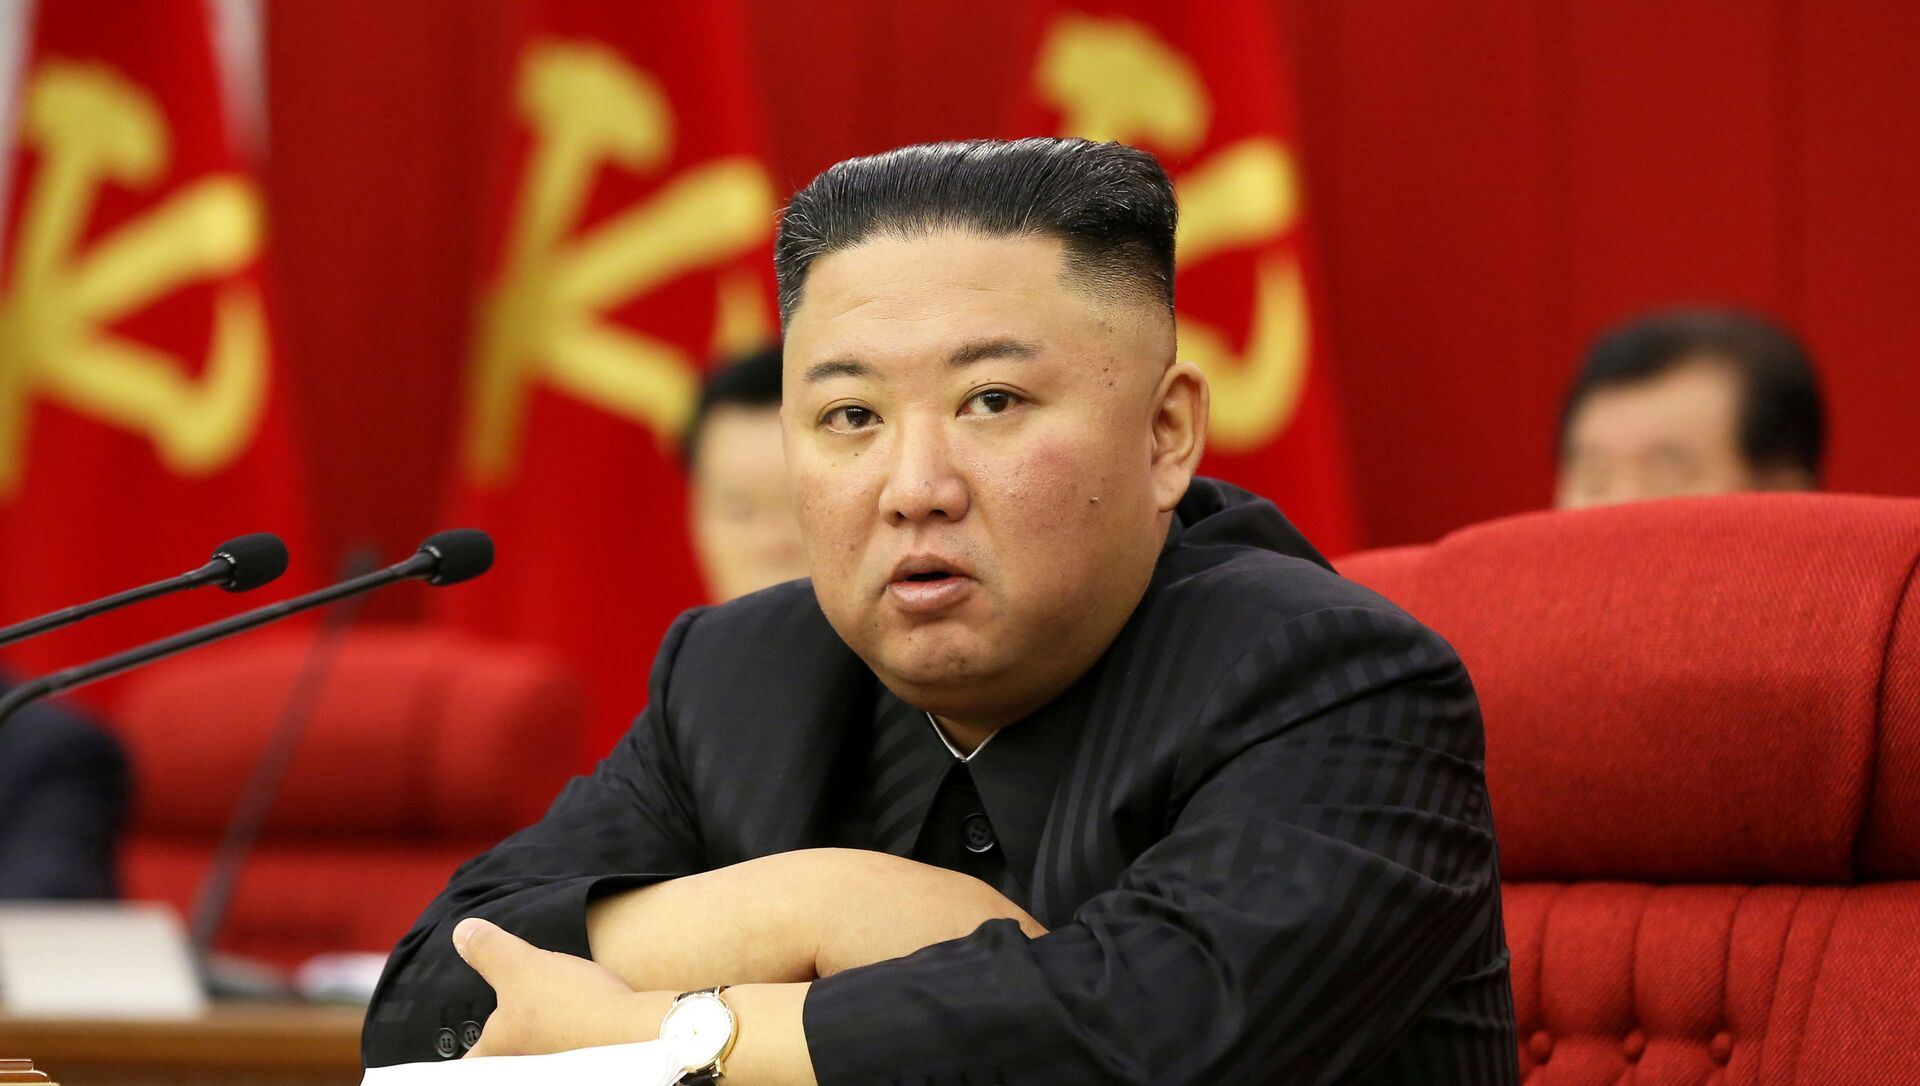 North Korean leader Kim Jong Un speaks at a meeting of the Workers' Party of Korea in Pyongyang, North Korea in this image released 18 June 2021 by the country's Korean Central News Agency. - Sputnik International, 1920, 02.08.2021